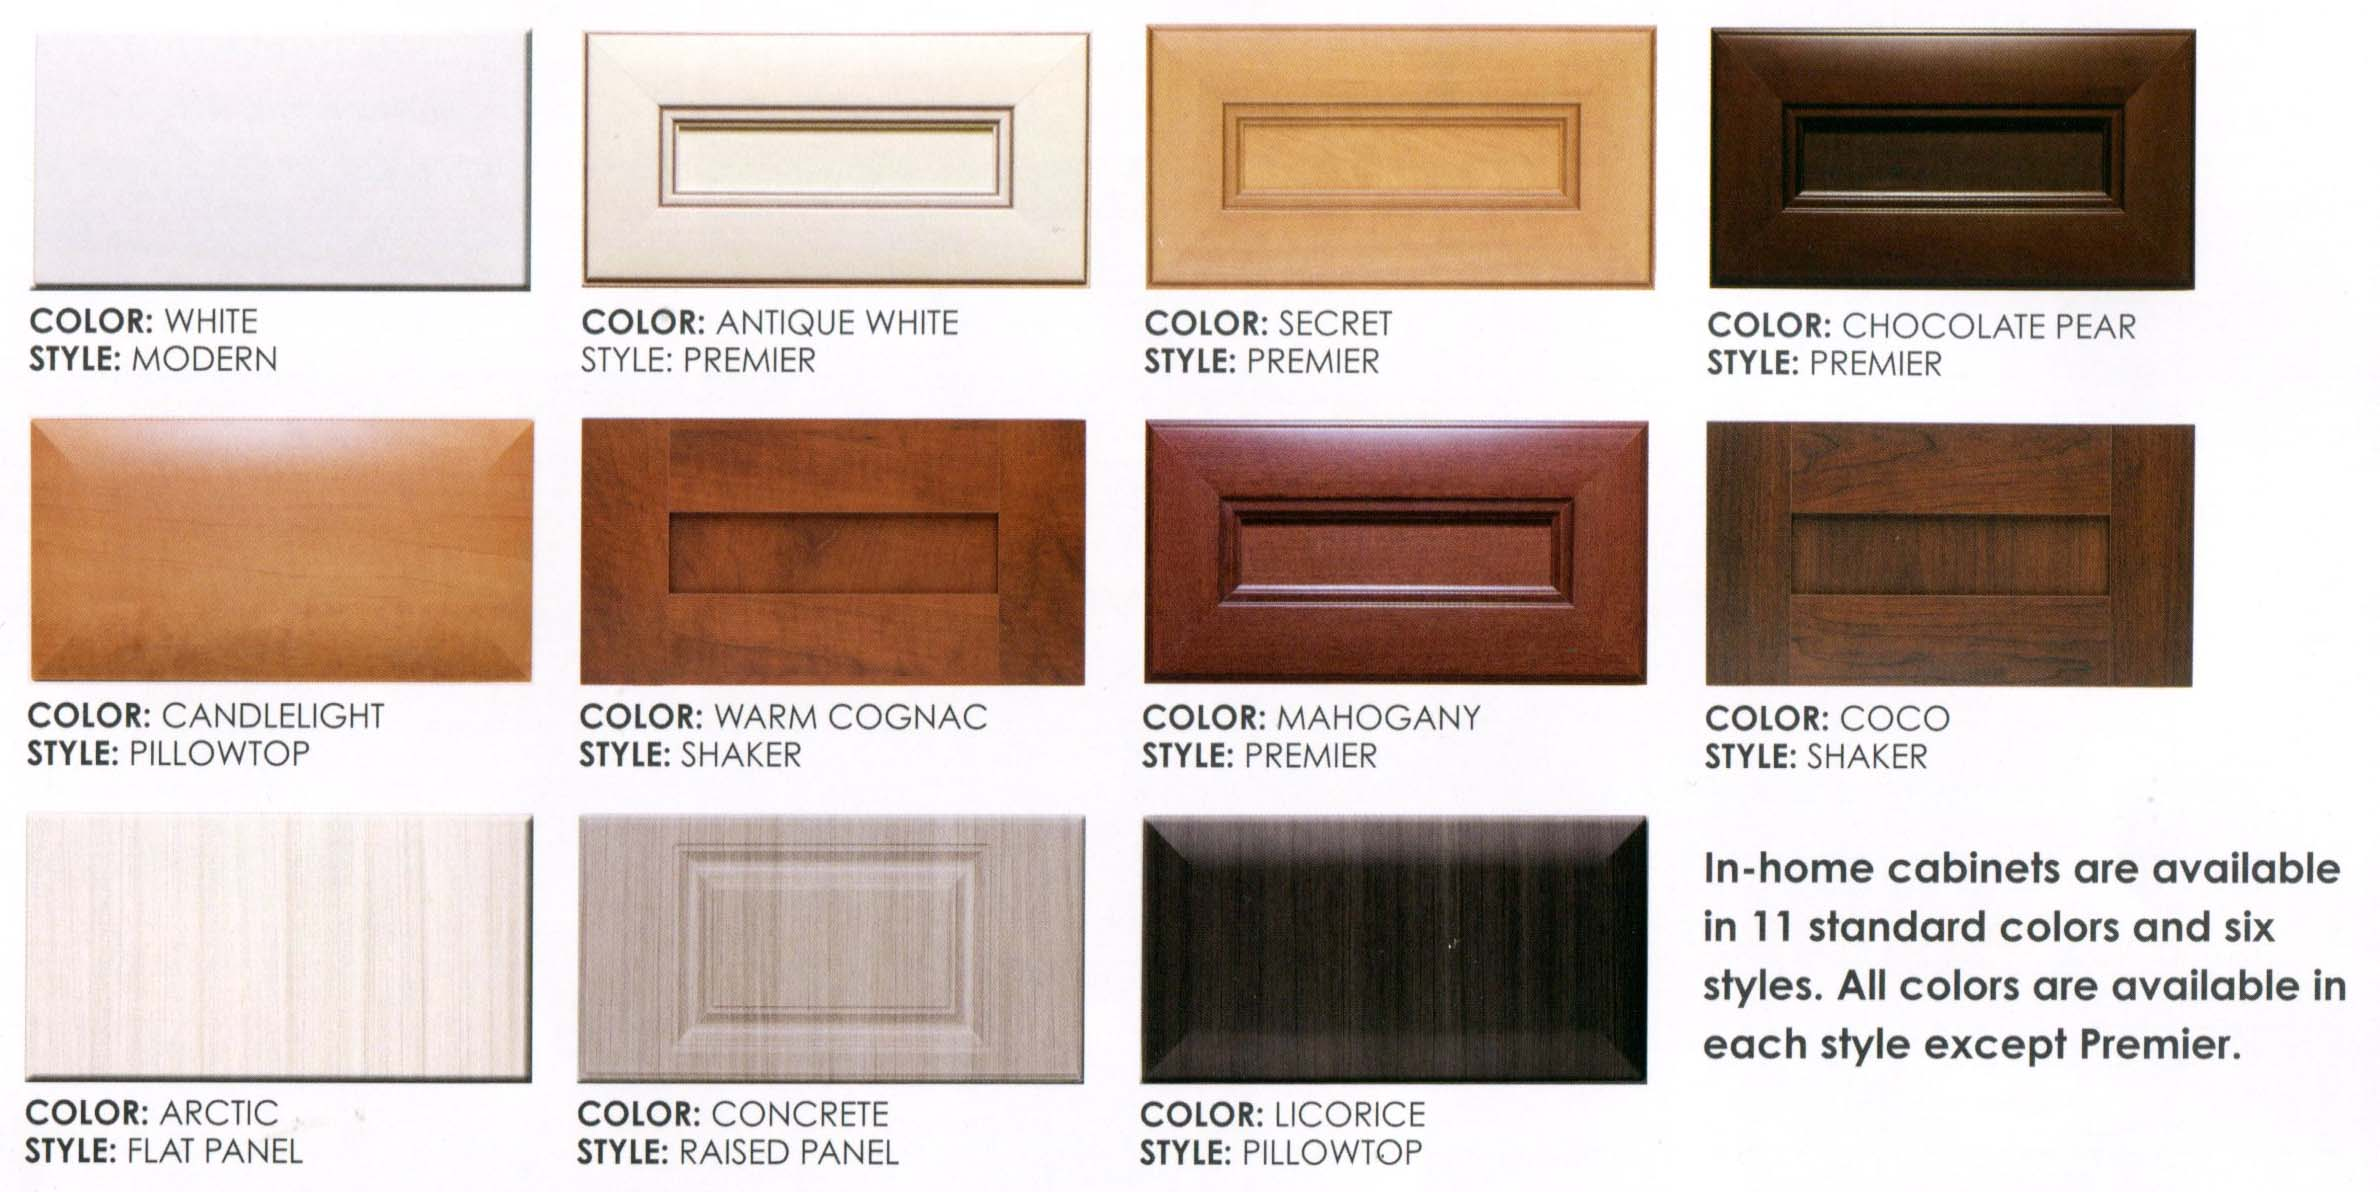 In-home cabinets are available in 11 standard colors and six styles. All colors are available in each style except Premier.